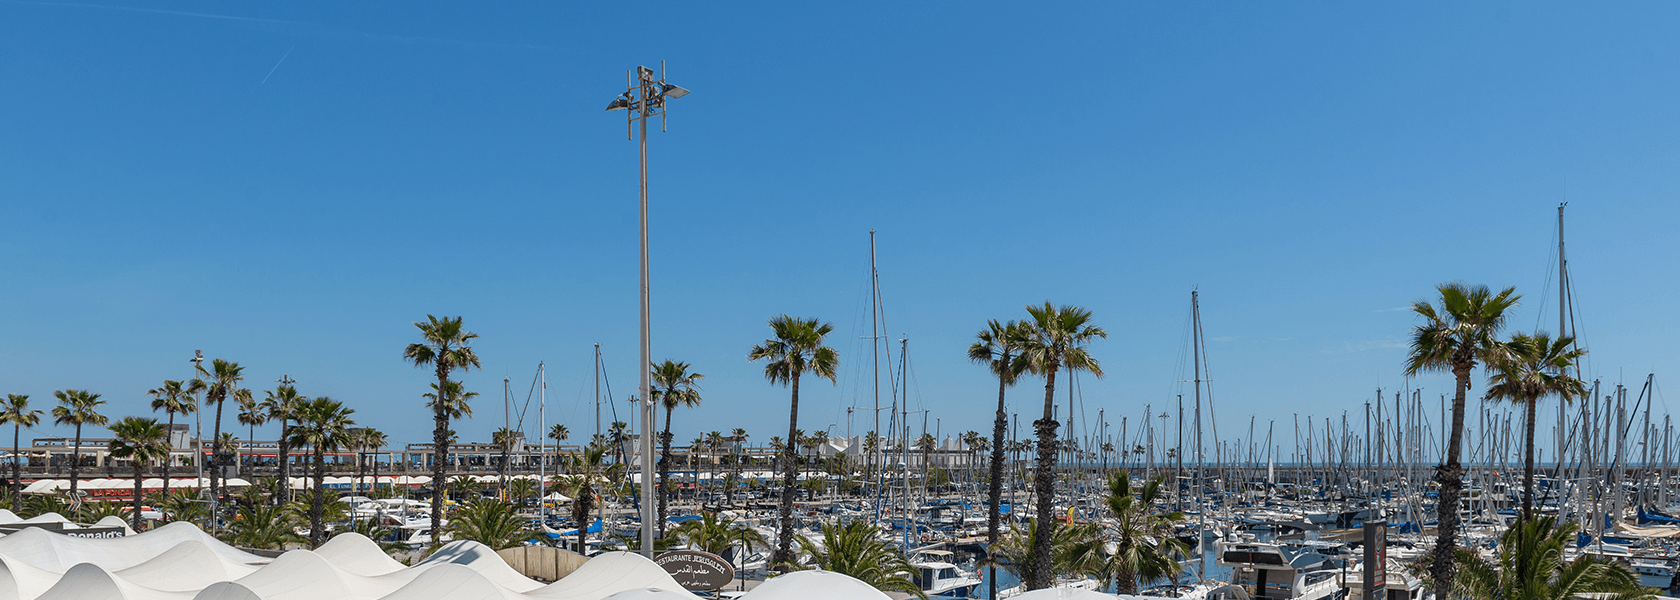 Barcelona's Olympic Marina is just a short walk from the hotel